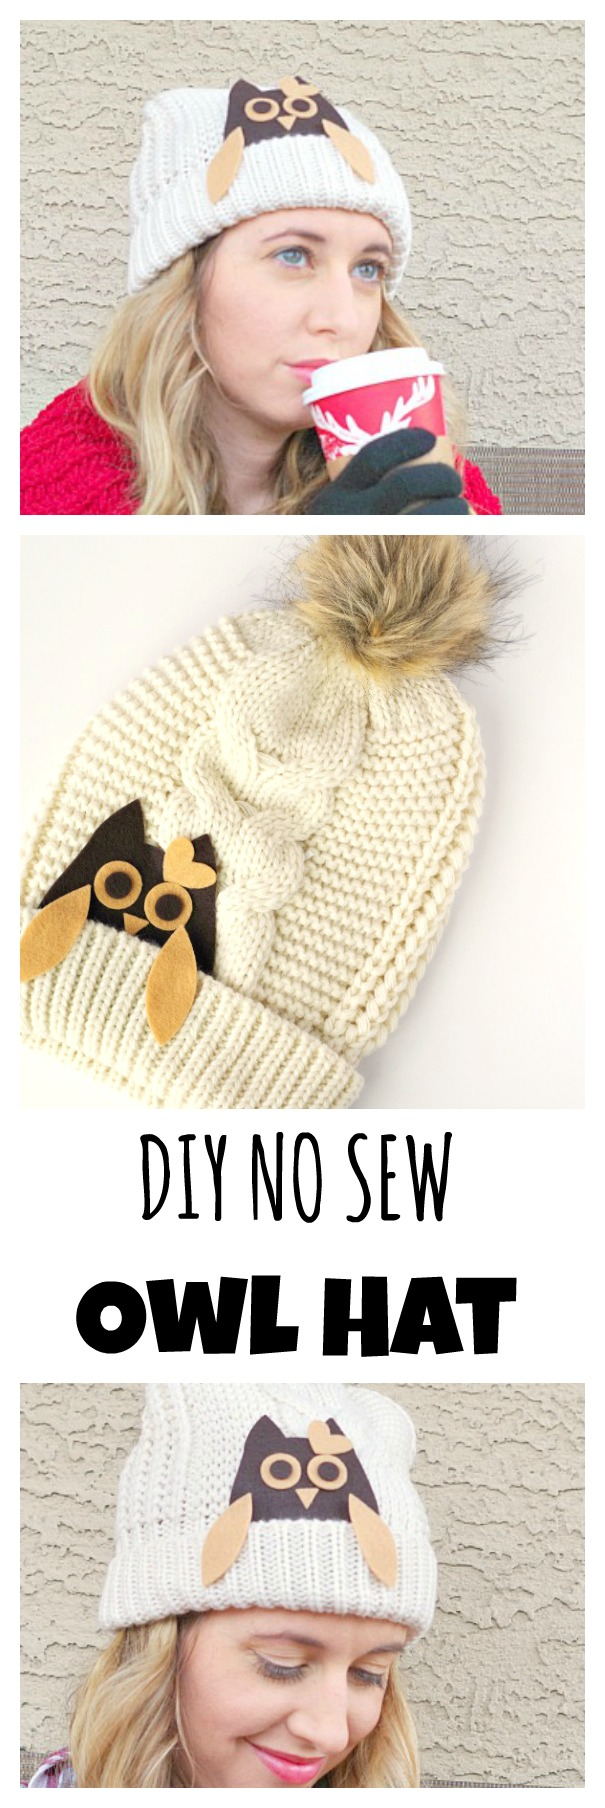 DIY No Sew Owl Hat